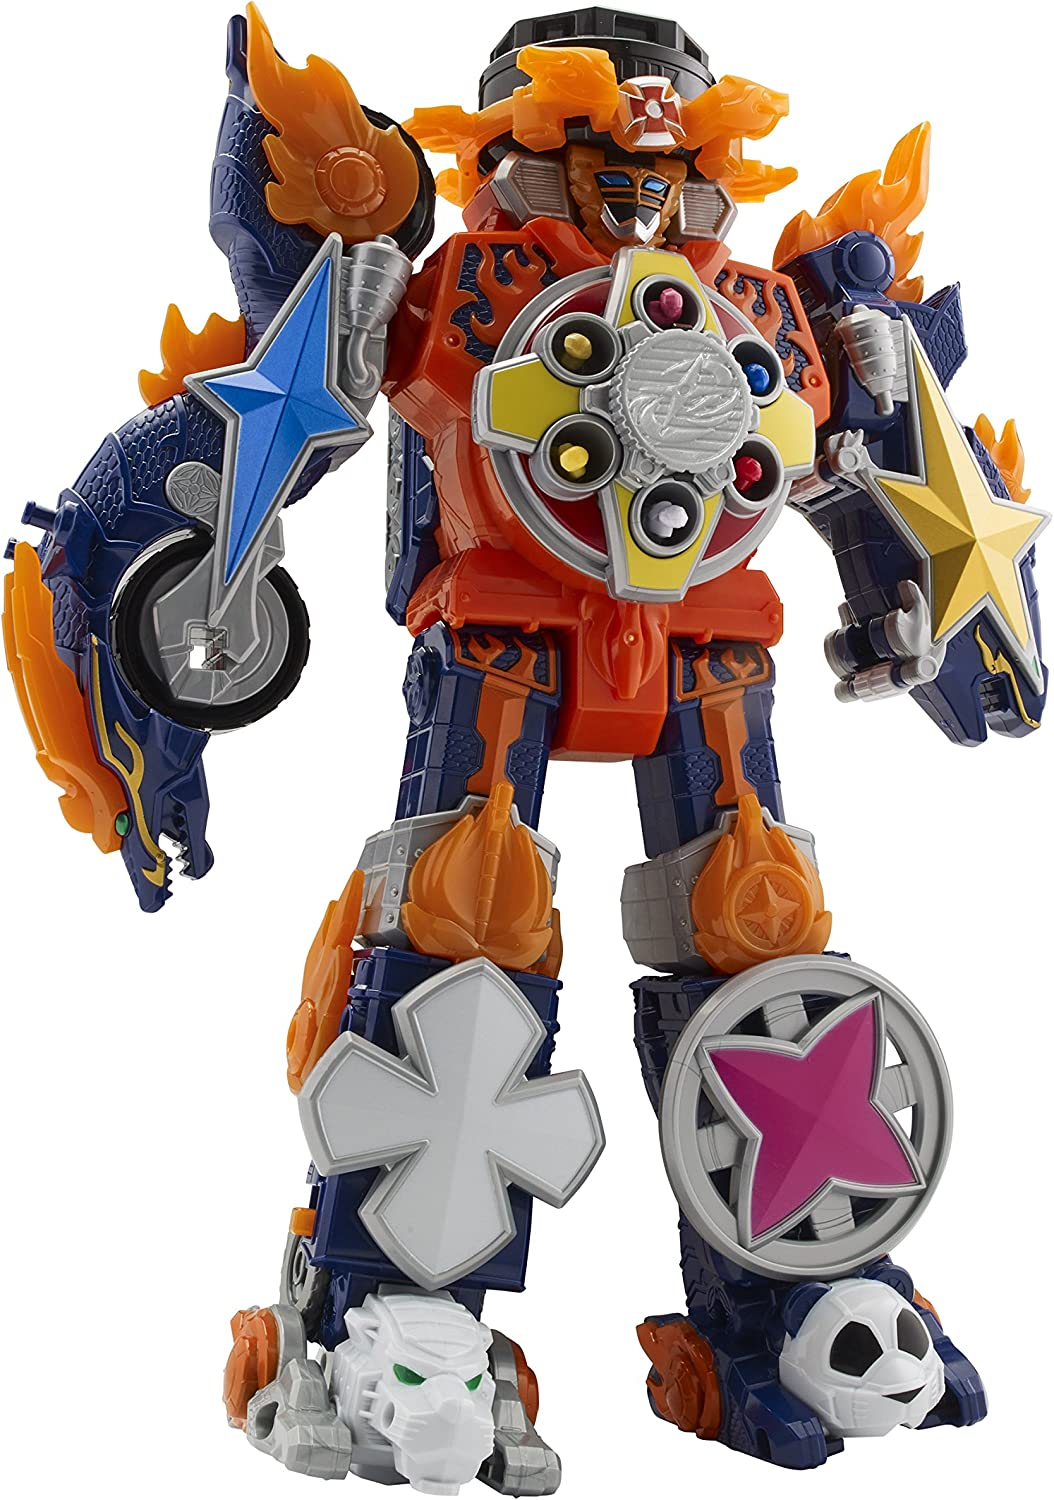 Power Rangers 43740 Super Ninja Steel Blaze Megazord, Multi-Colour